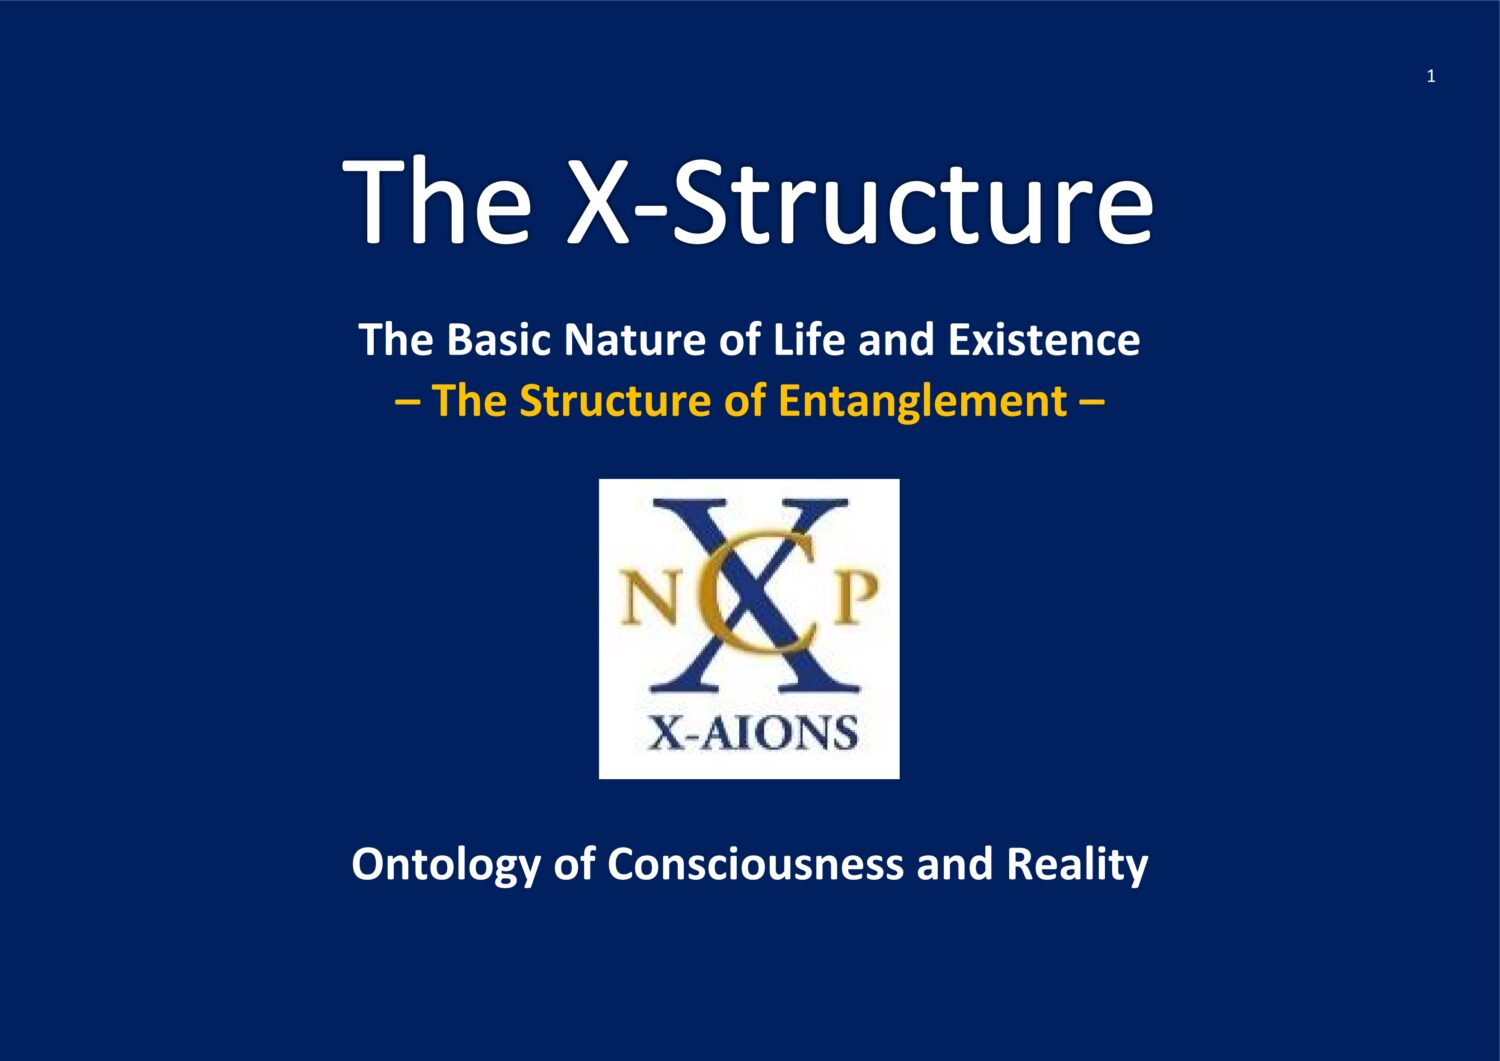 The X-Structure Basic Nature of Live and Existence NCP X-AIONS